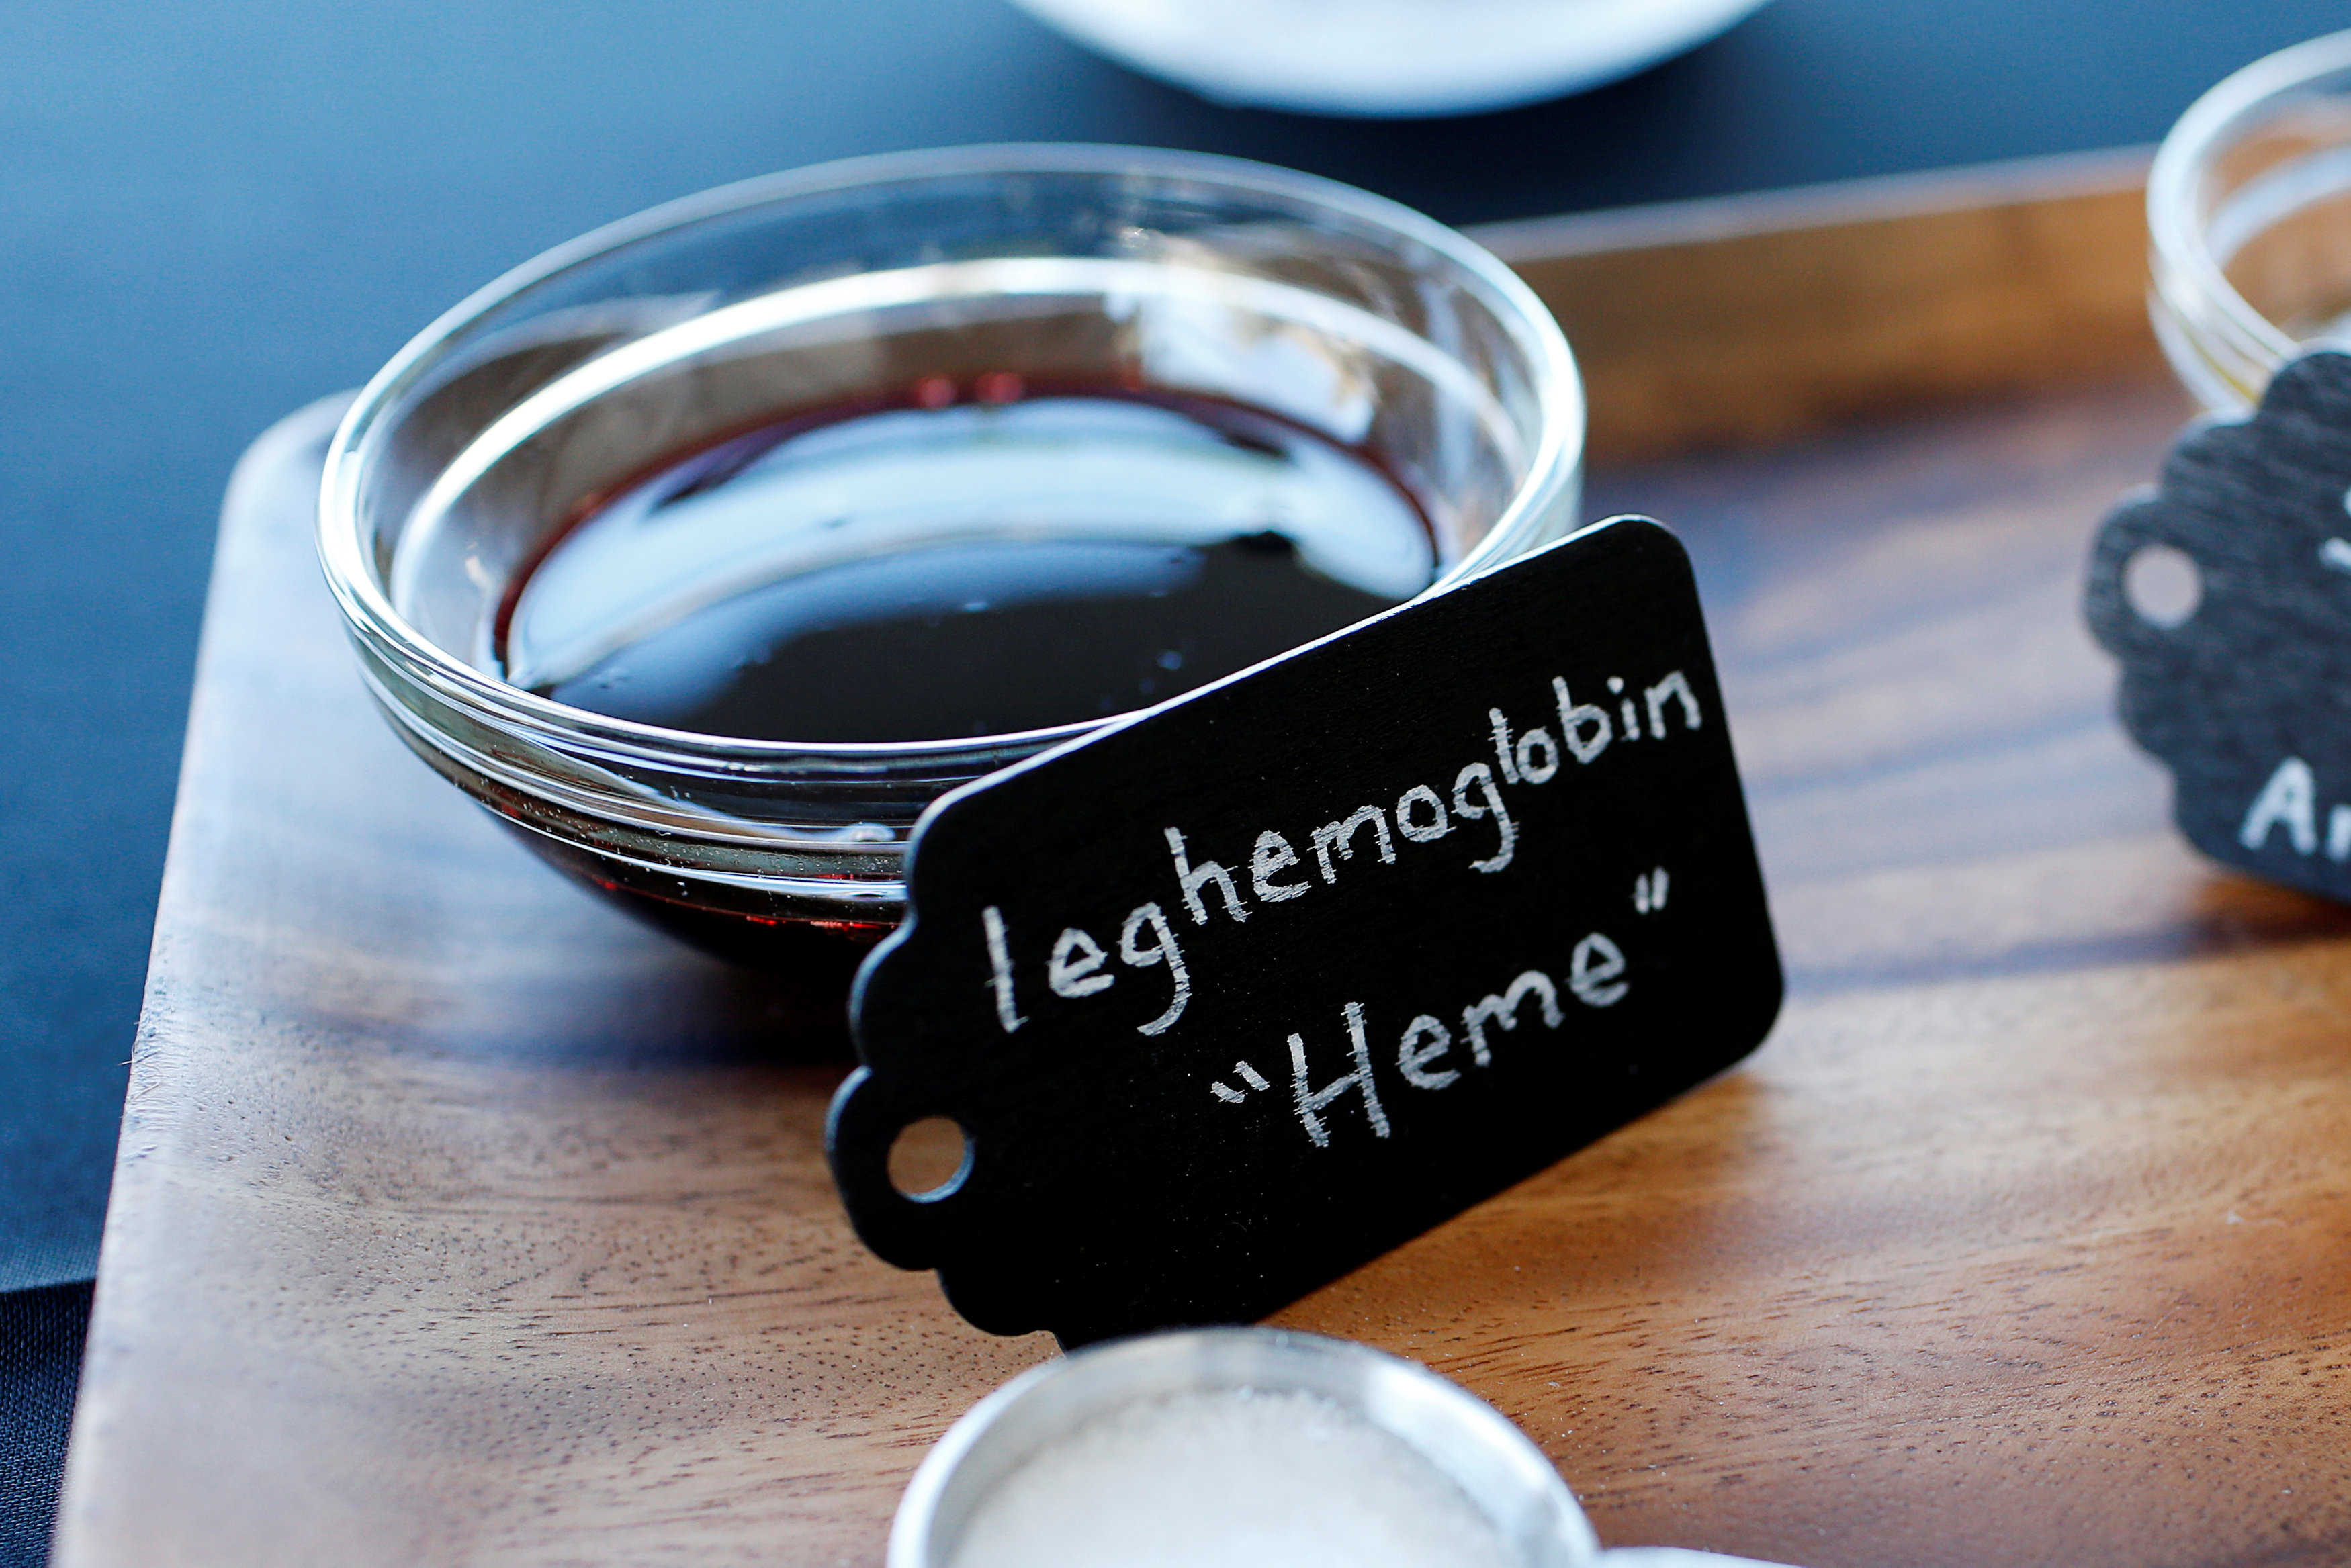 Leghemoglobin, which mimic's blood in plant-based patties, are on display during a media tour of Impossible Foods labs and processing plant in Redwood City, California, U.S. October 6, 2016. Picture taken October 6, 2016. REUTERS/Beck Diefenbach